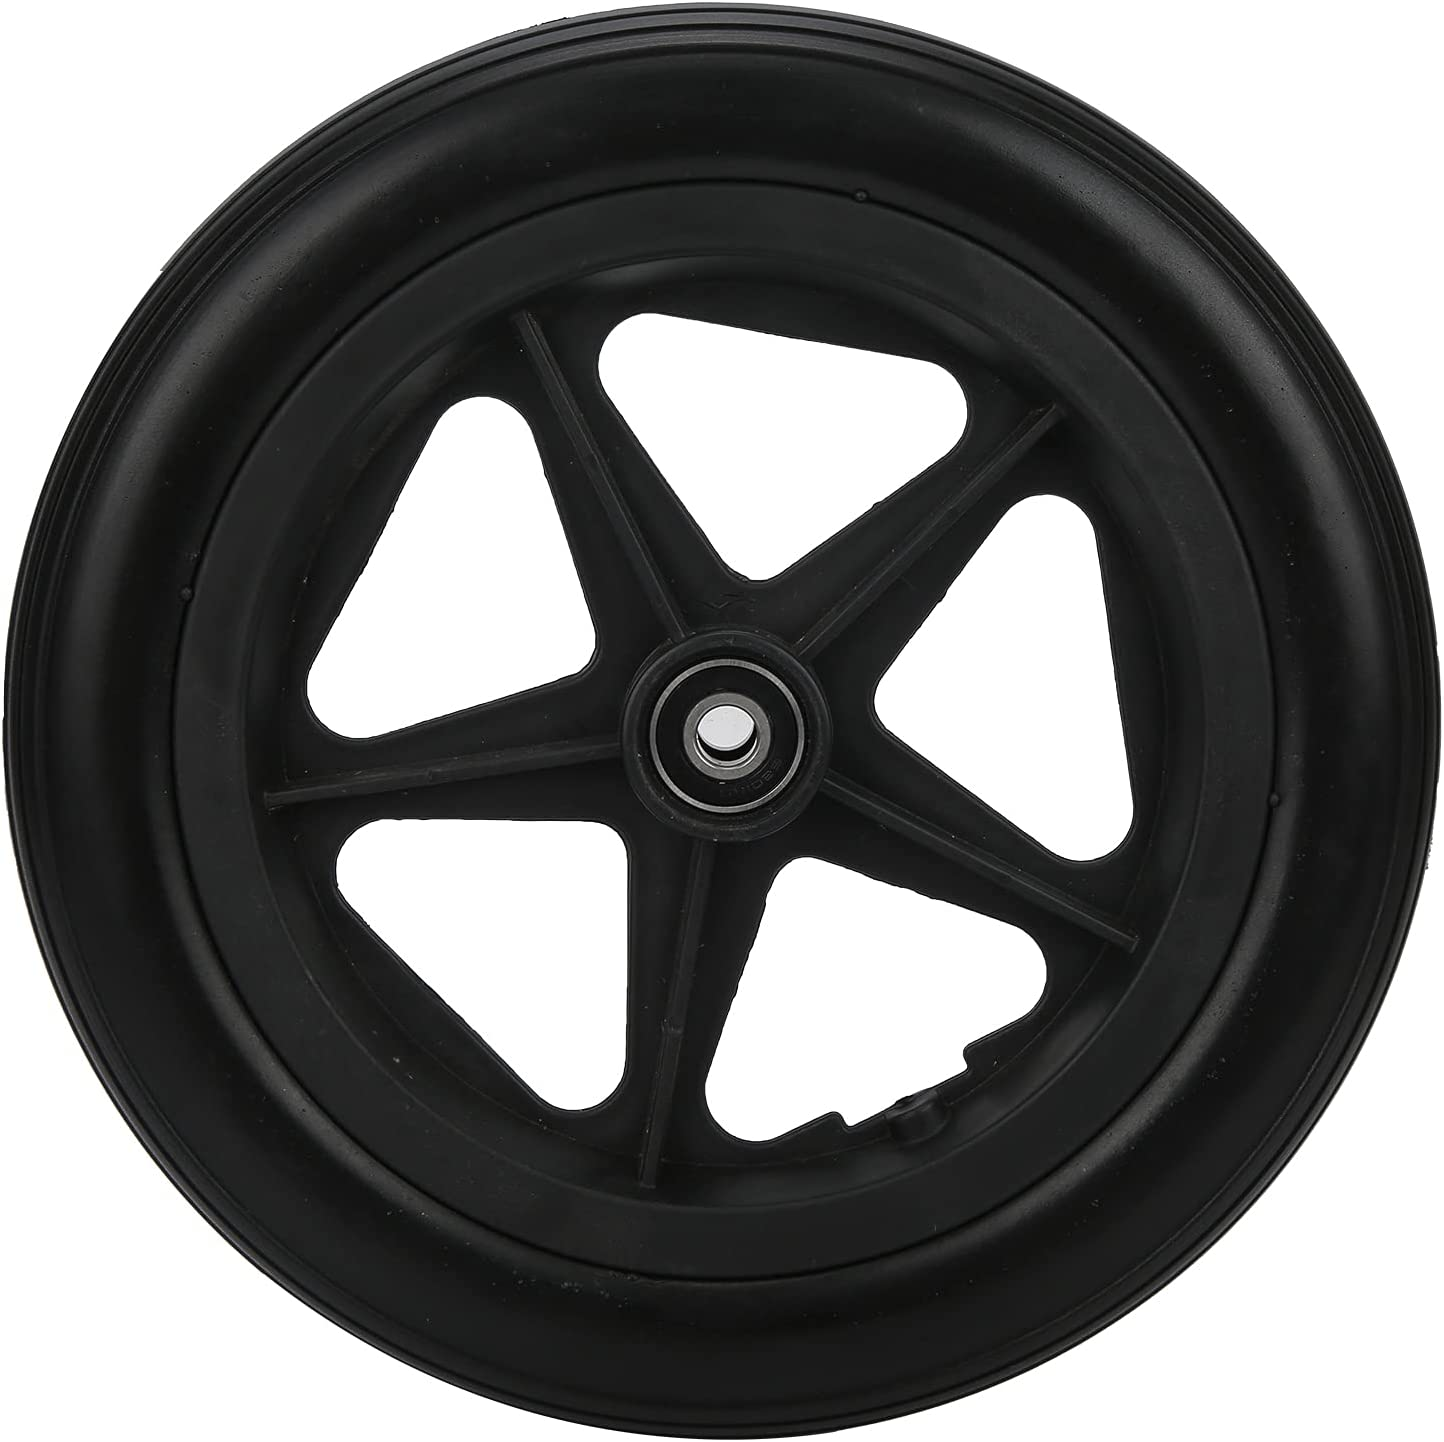 12in Solid Wheel Replacement PU Aluminum Alloy Non-Slip Front Ti